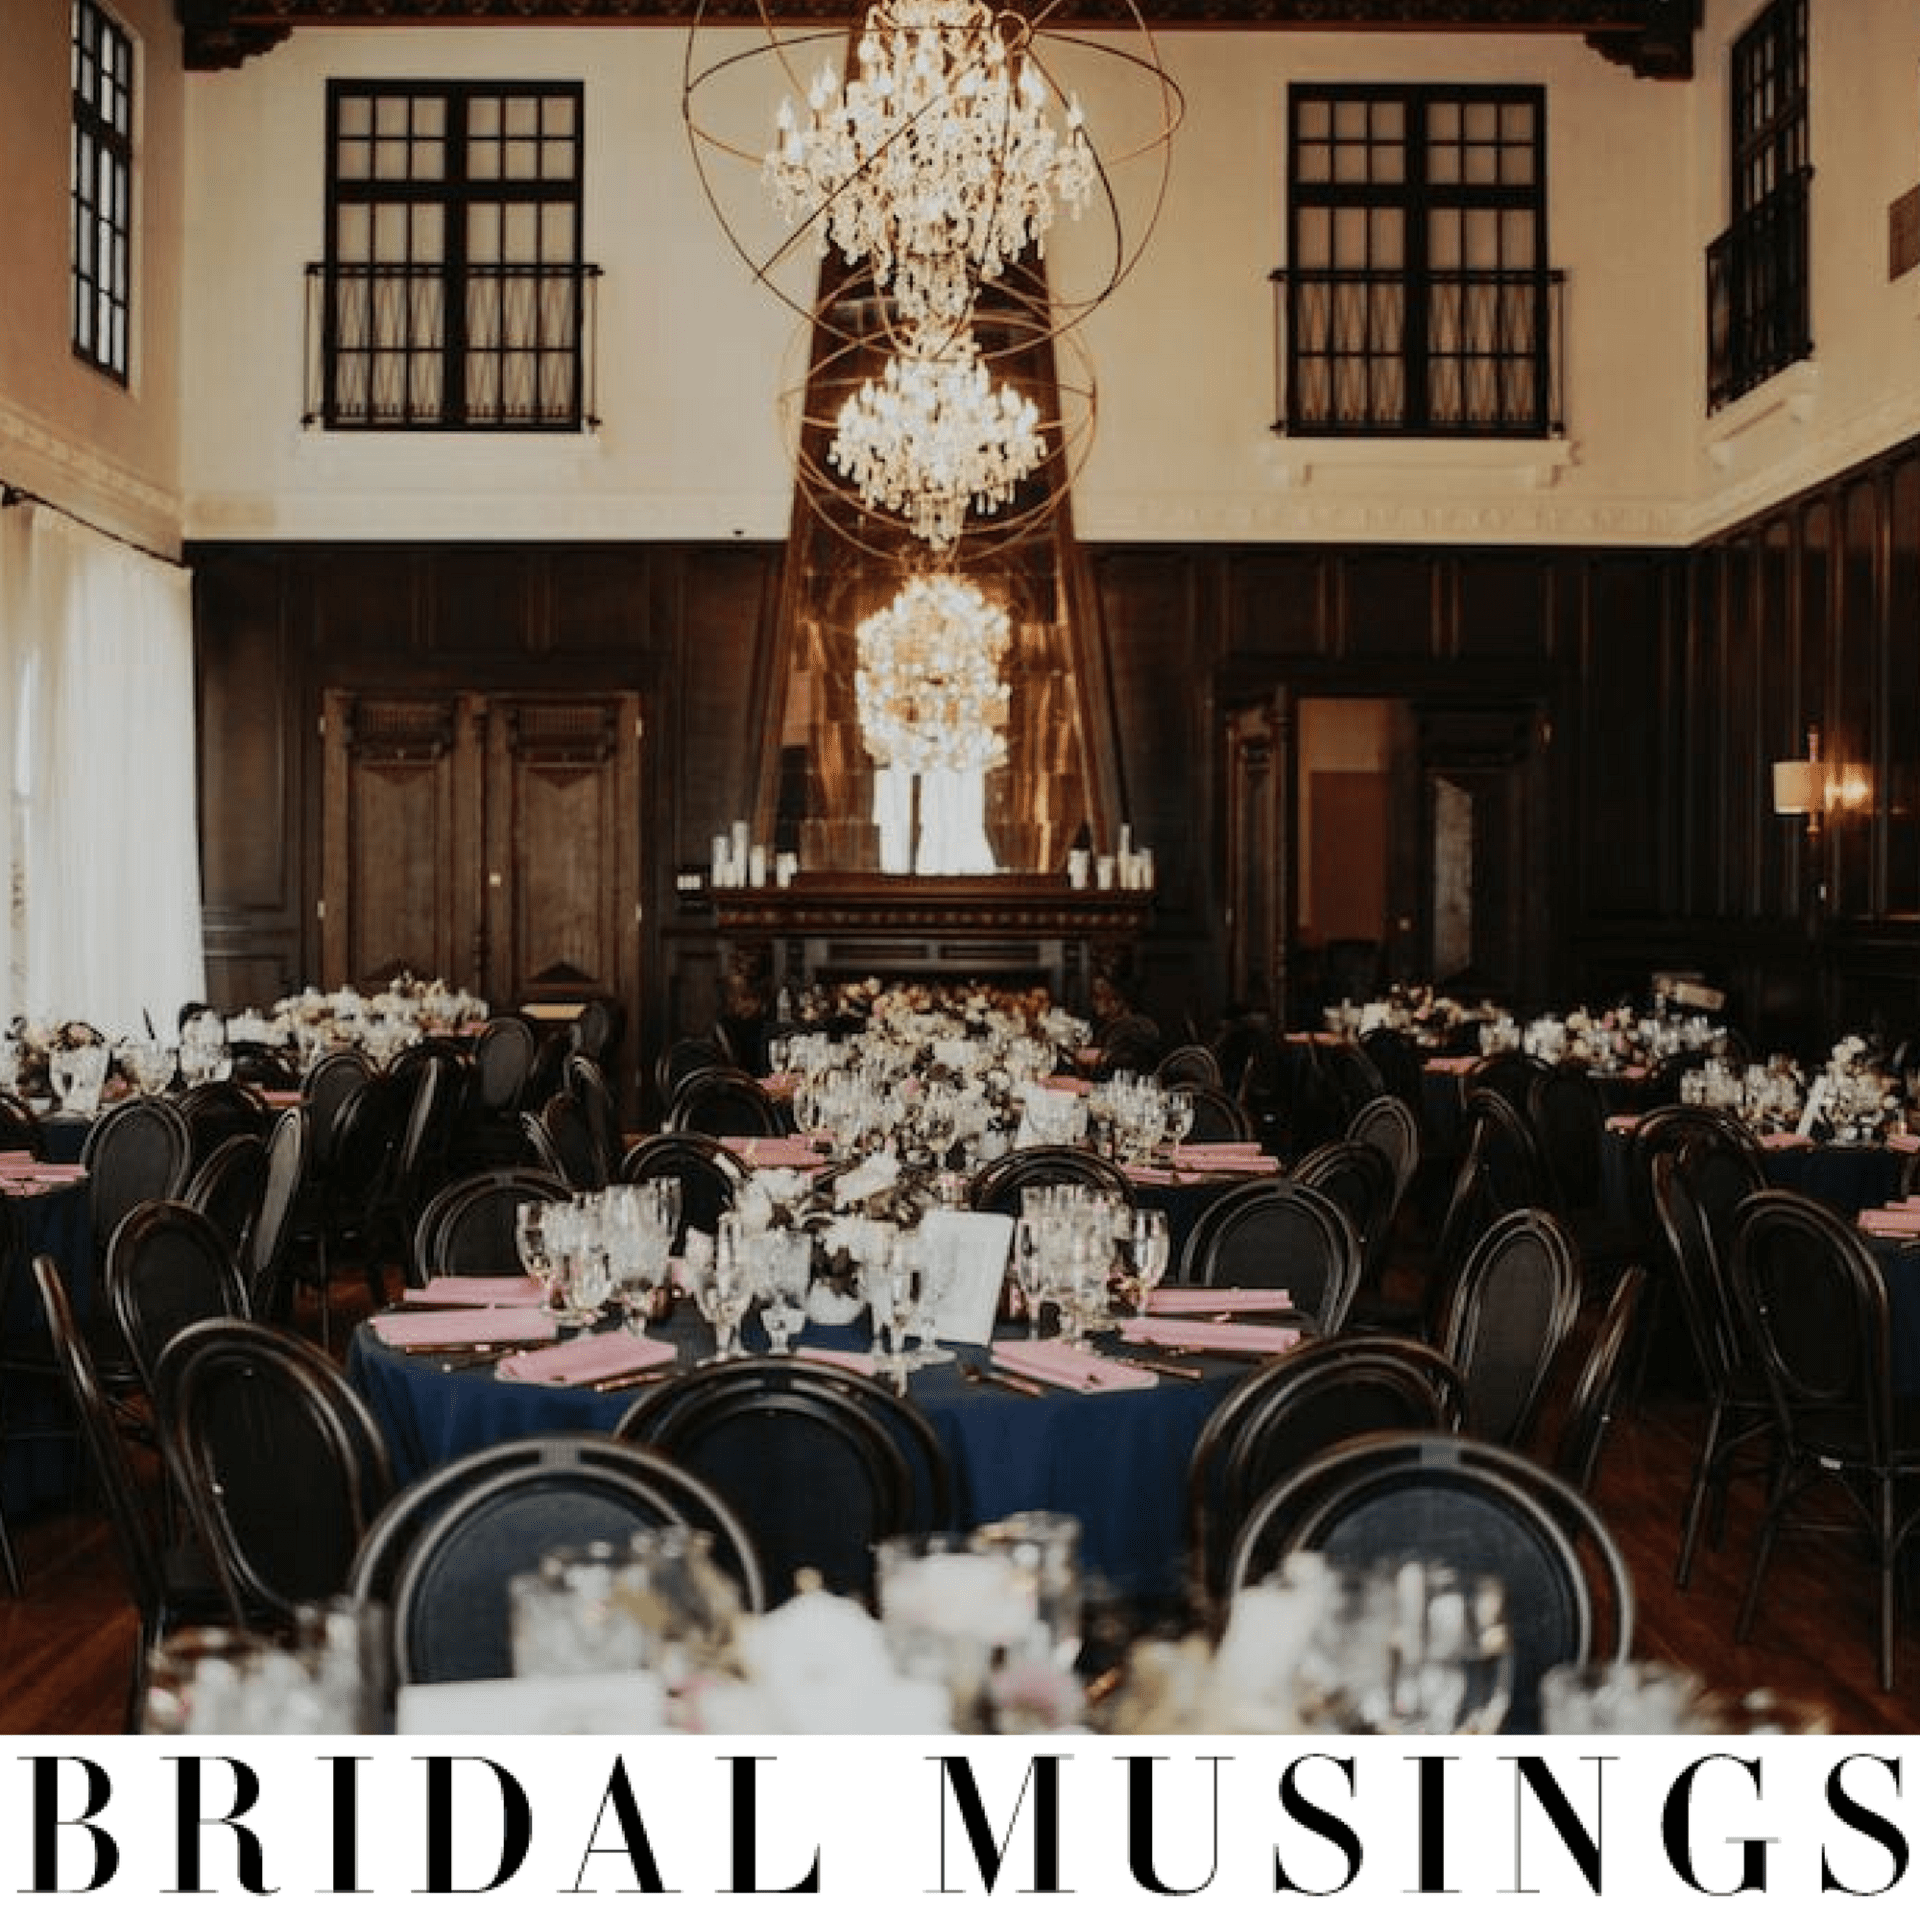 Intimate and Stylish Ebell Wedding Featured on Bridal Musings